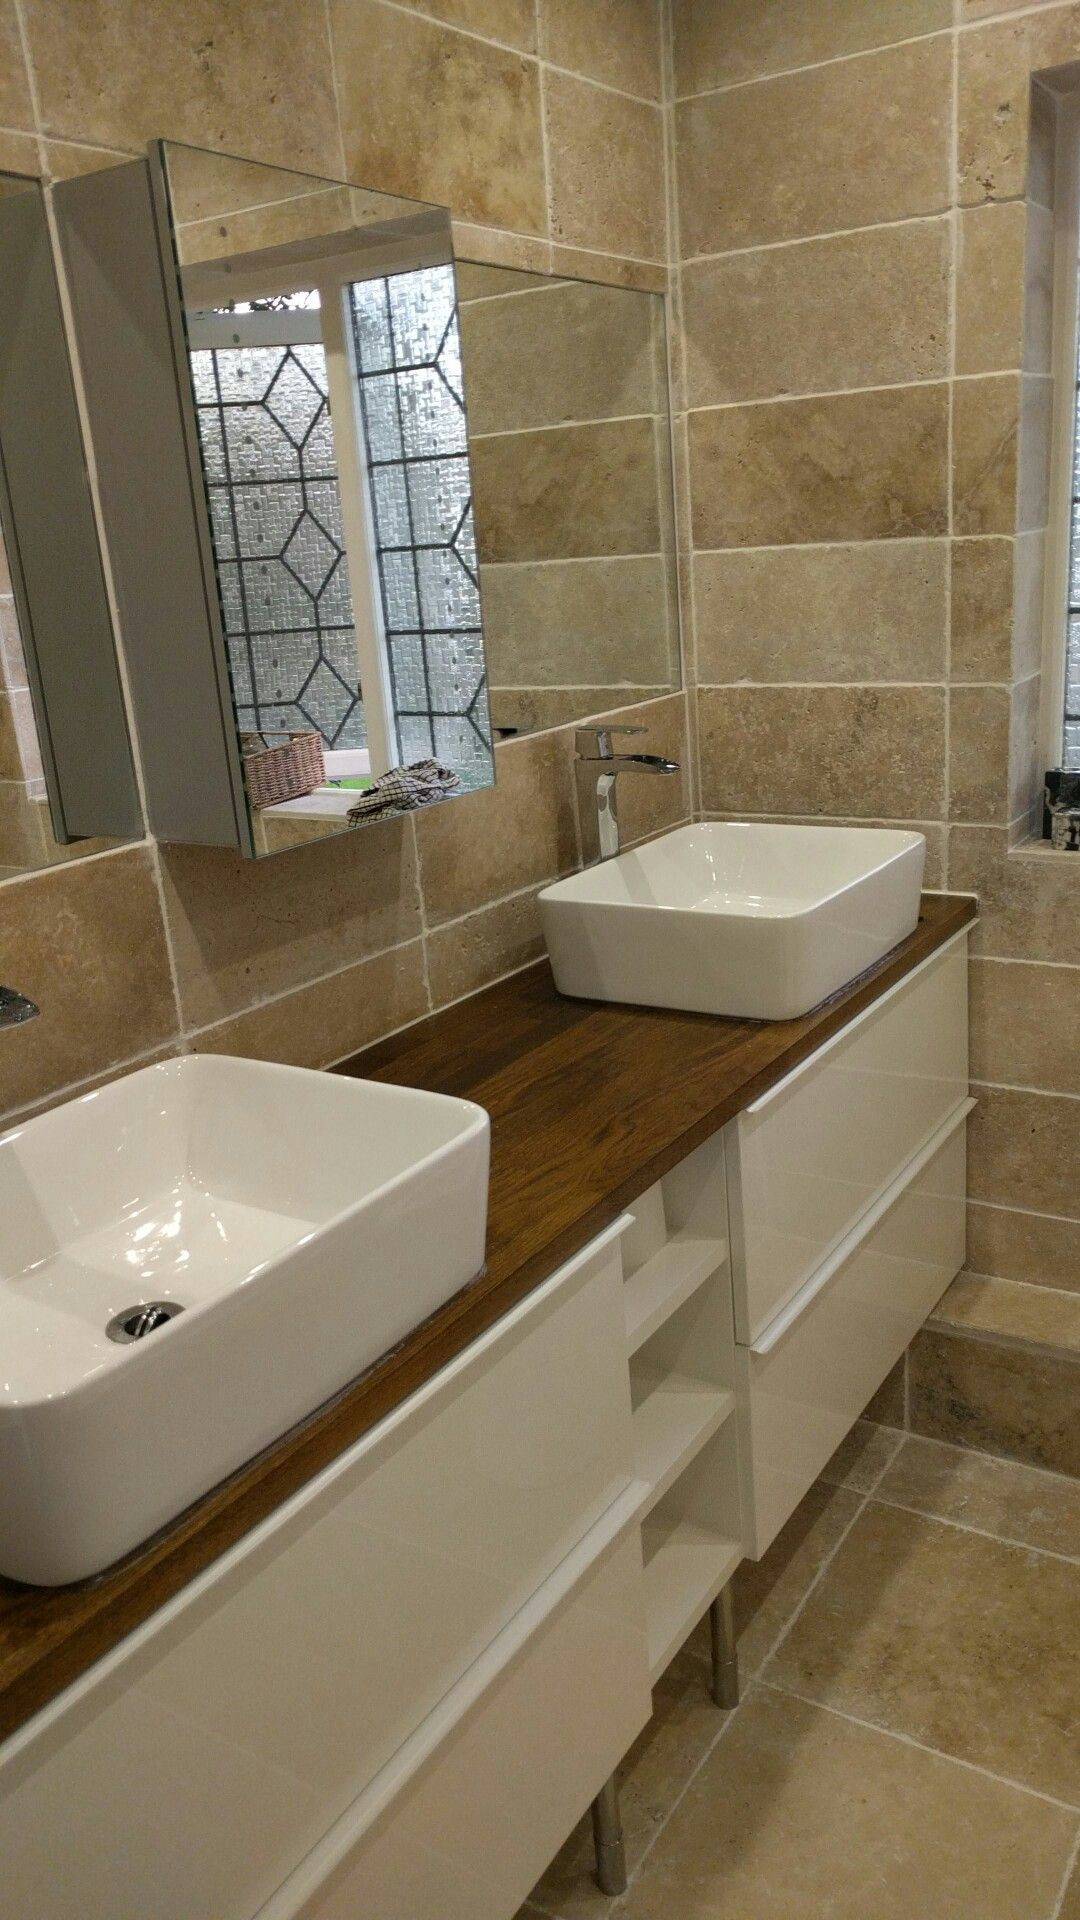 Ikea Badezimmermöbel Set Bathroom Is Ready Natural Stone Travertine Tiles Oak Worktop And